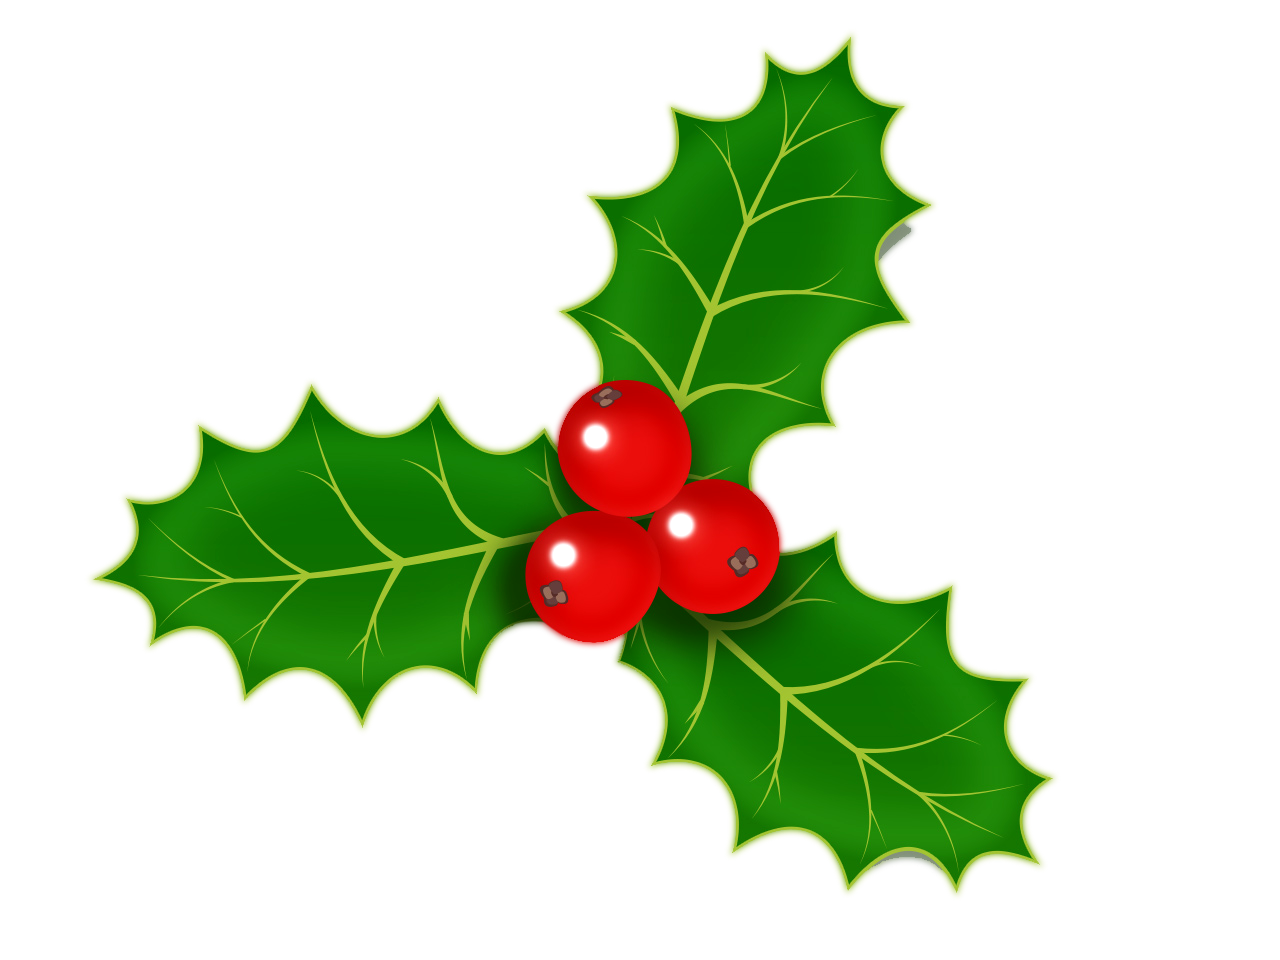 christmas holly png images free download christmas holly clipart free borders christmas holly clipart black and white